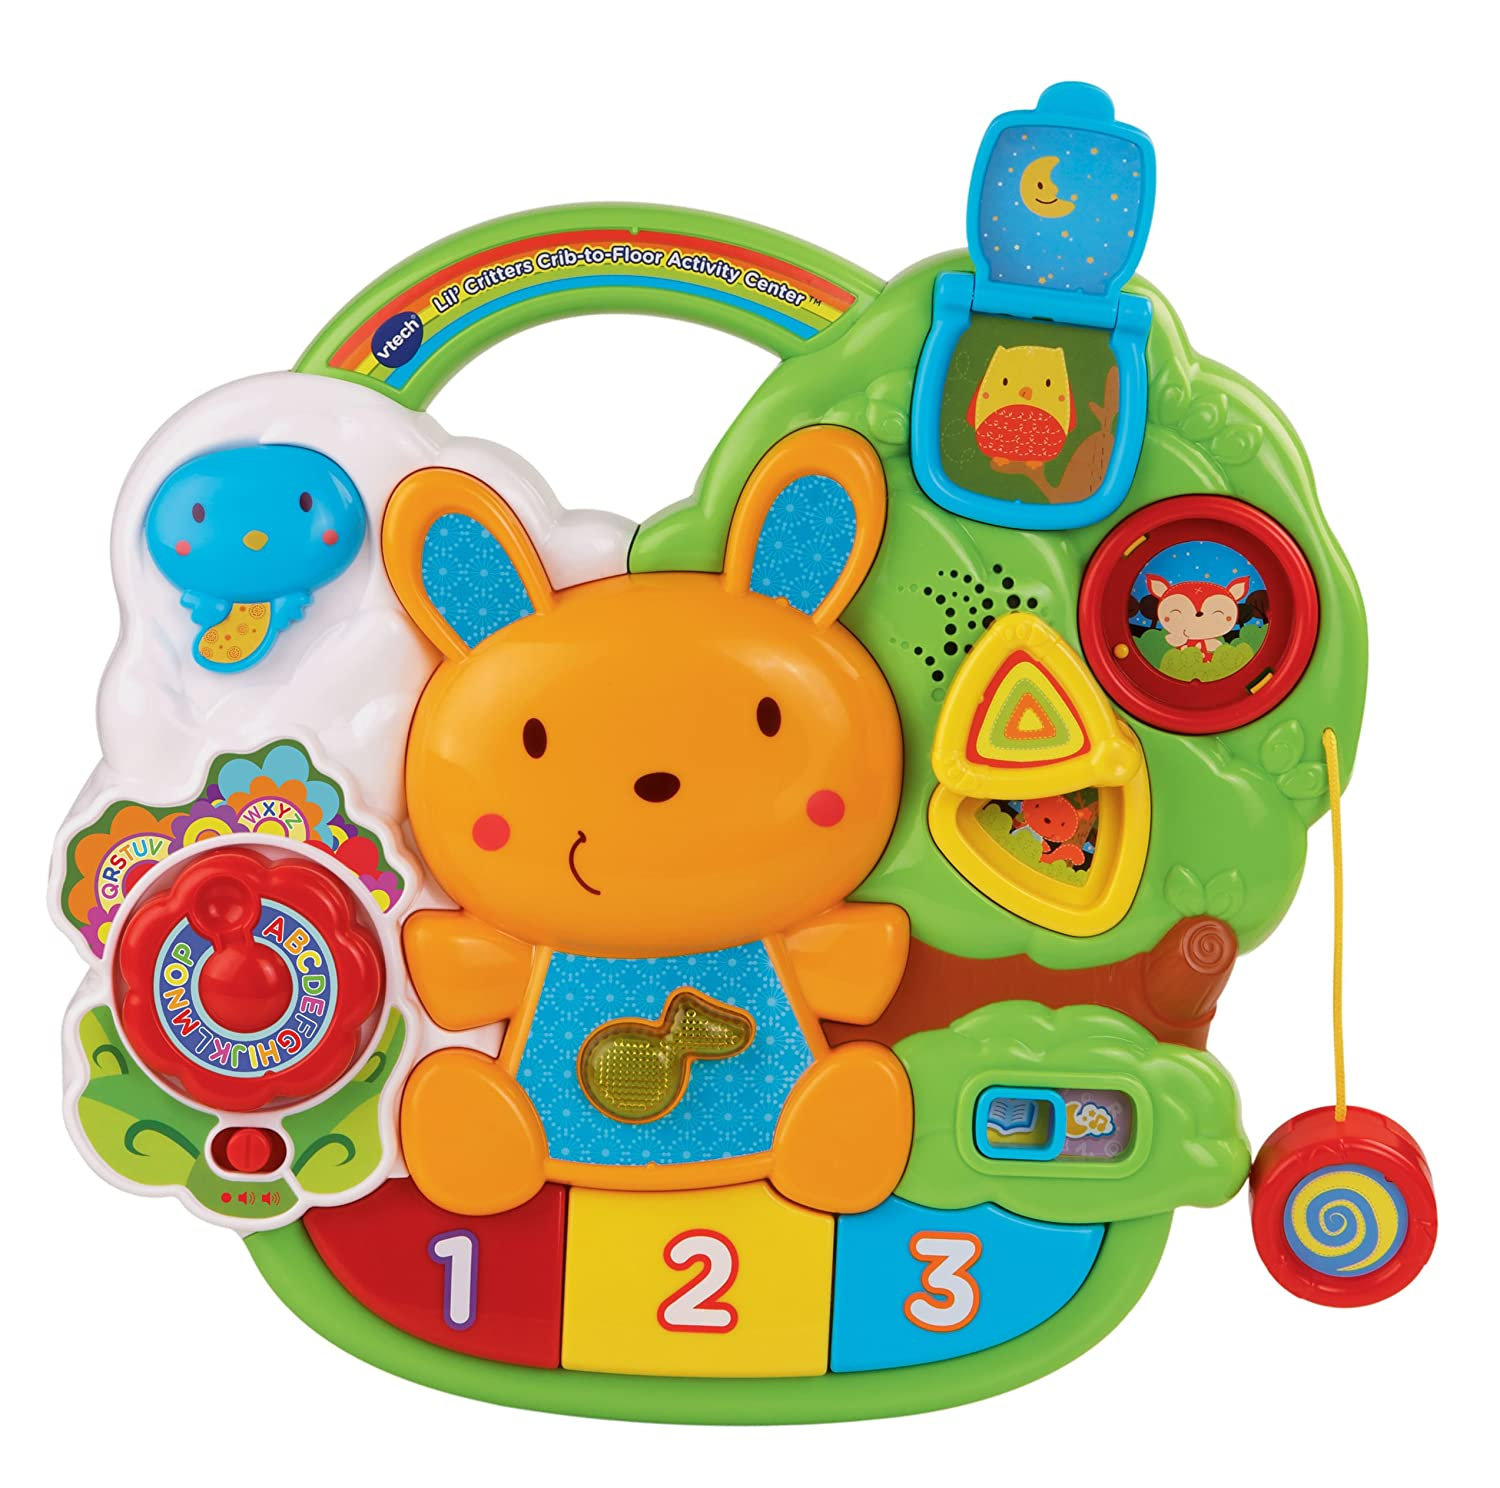 Amazon VTech Baby Lil Critters Crib to Floor Activity Center